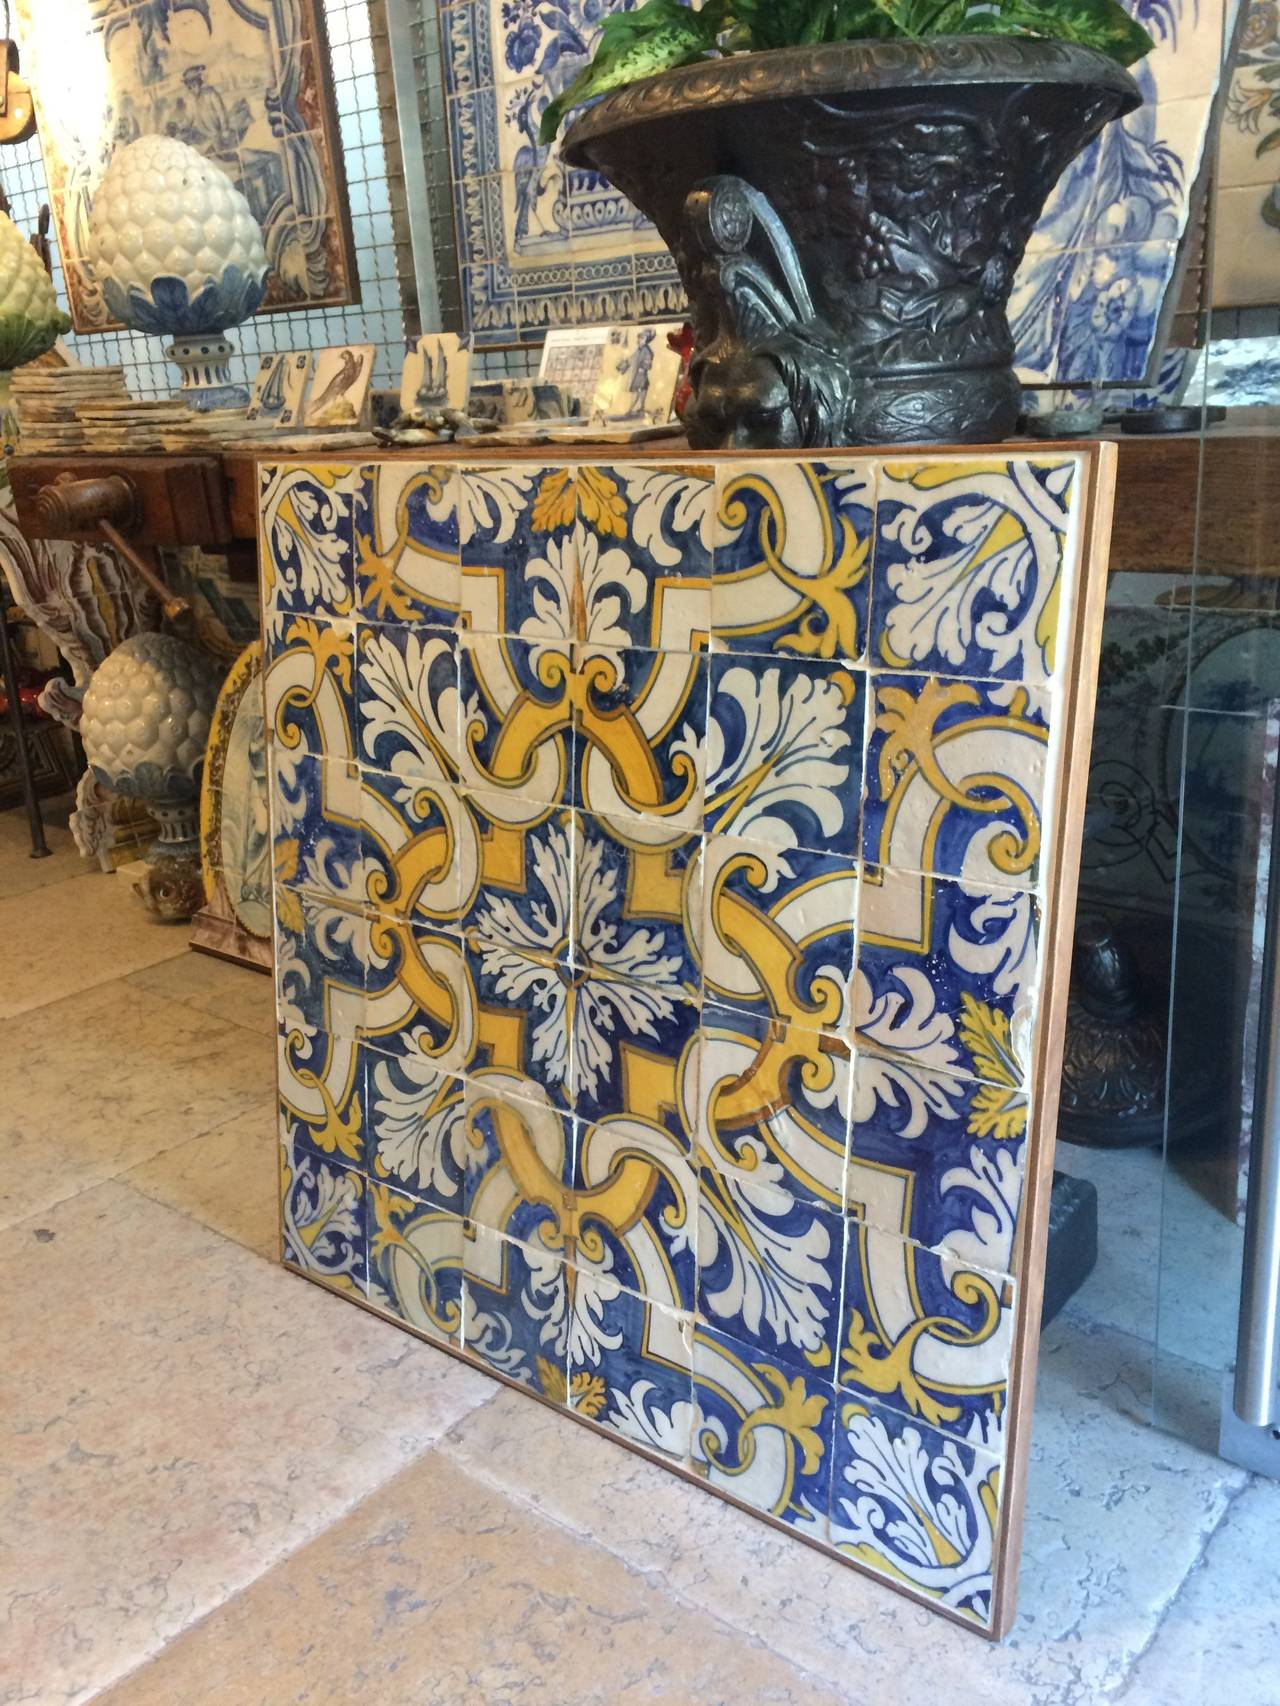 Azulejos polychrome mural composed by 36 tiles in a 6 by 6 module. Portugal set the taste for monumental ceramic tile applications in churches and palaces, covering entire walls and sometimes even ceilings. Before the 18th century golden age of